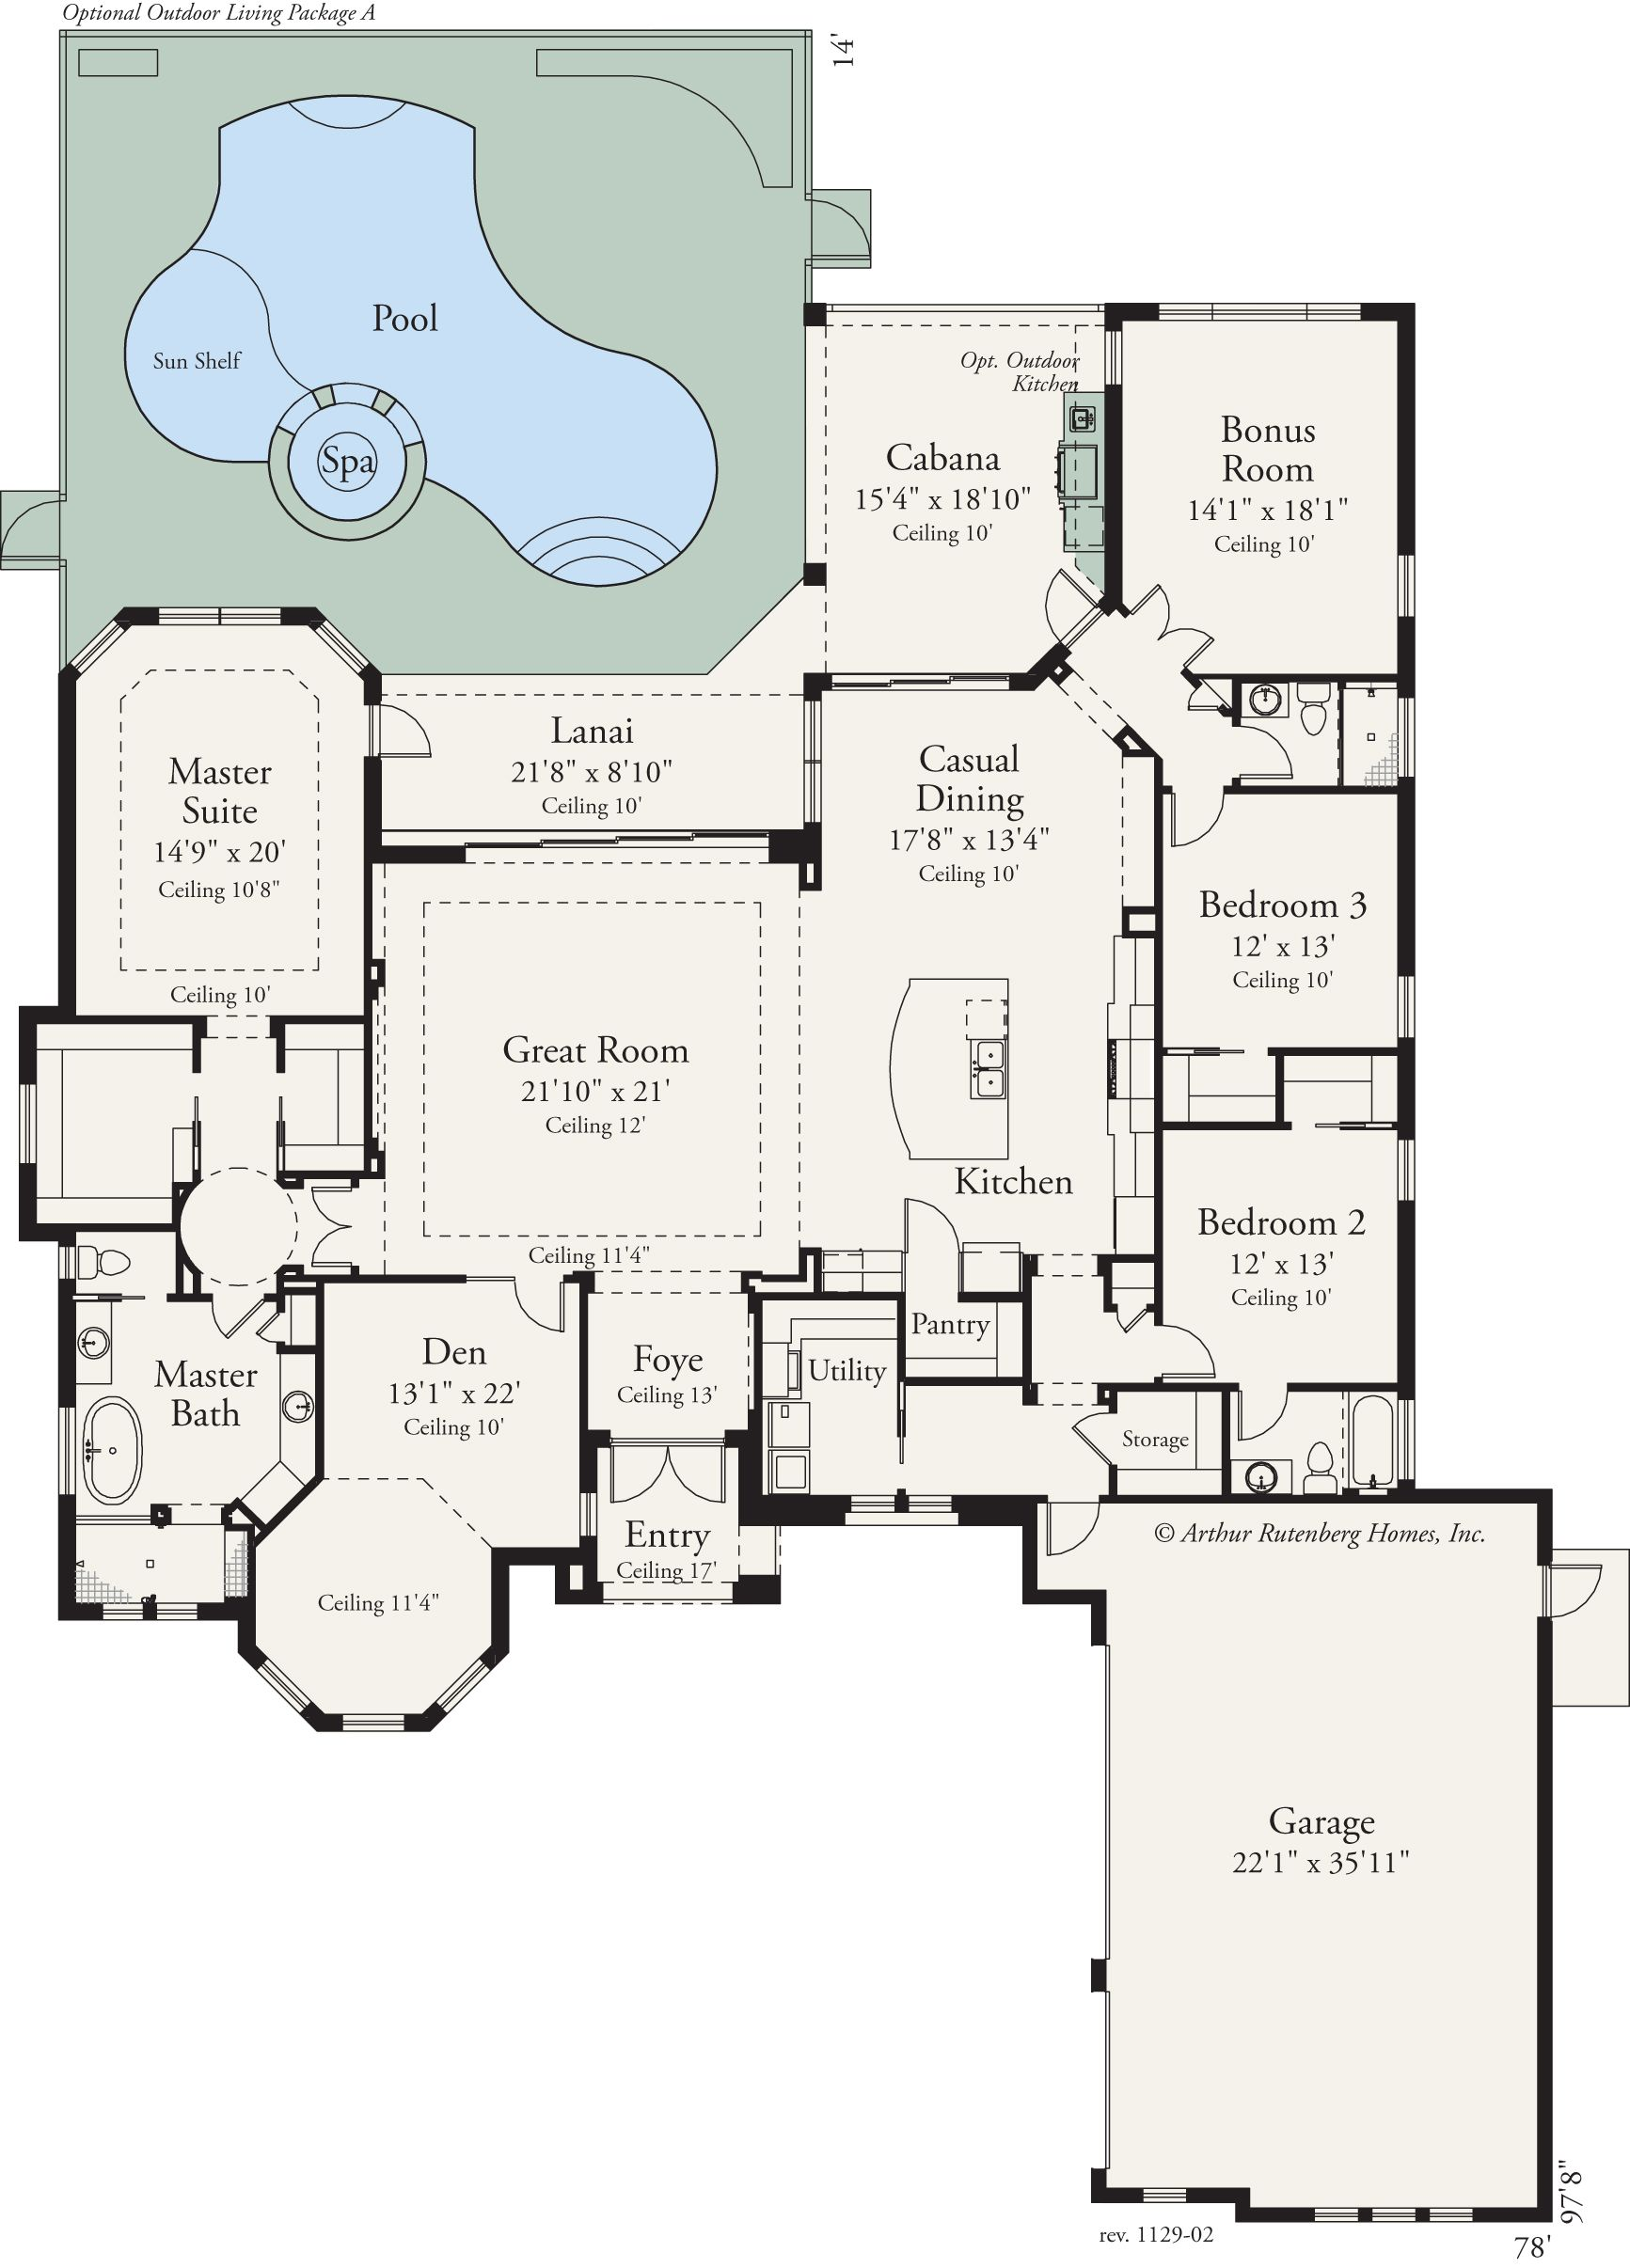 Decorating Small Open Floor Plan Living Room And Kitchen: This Custom 3 Bed, 3 Bath Home Features An Open Floor Plan